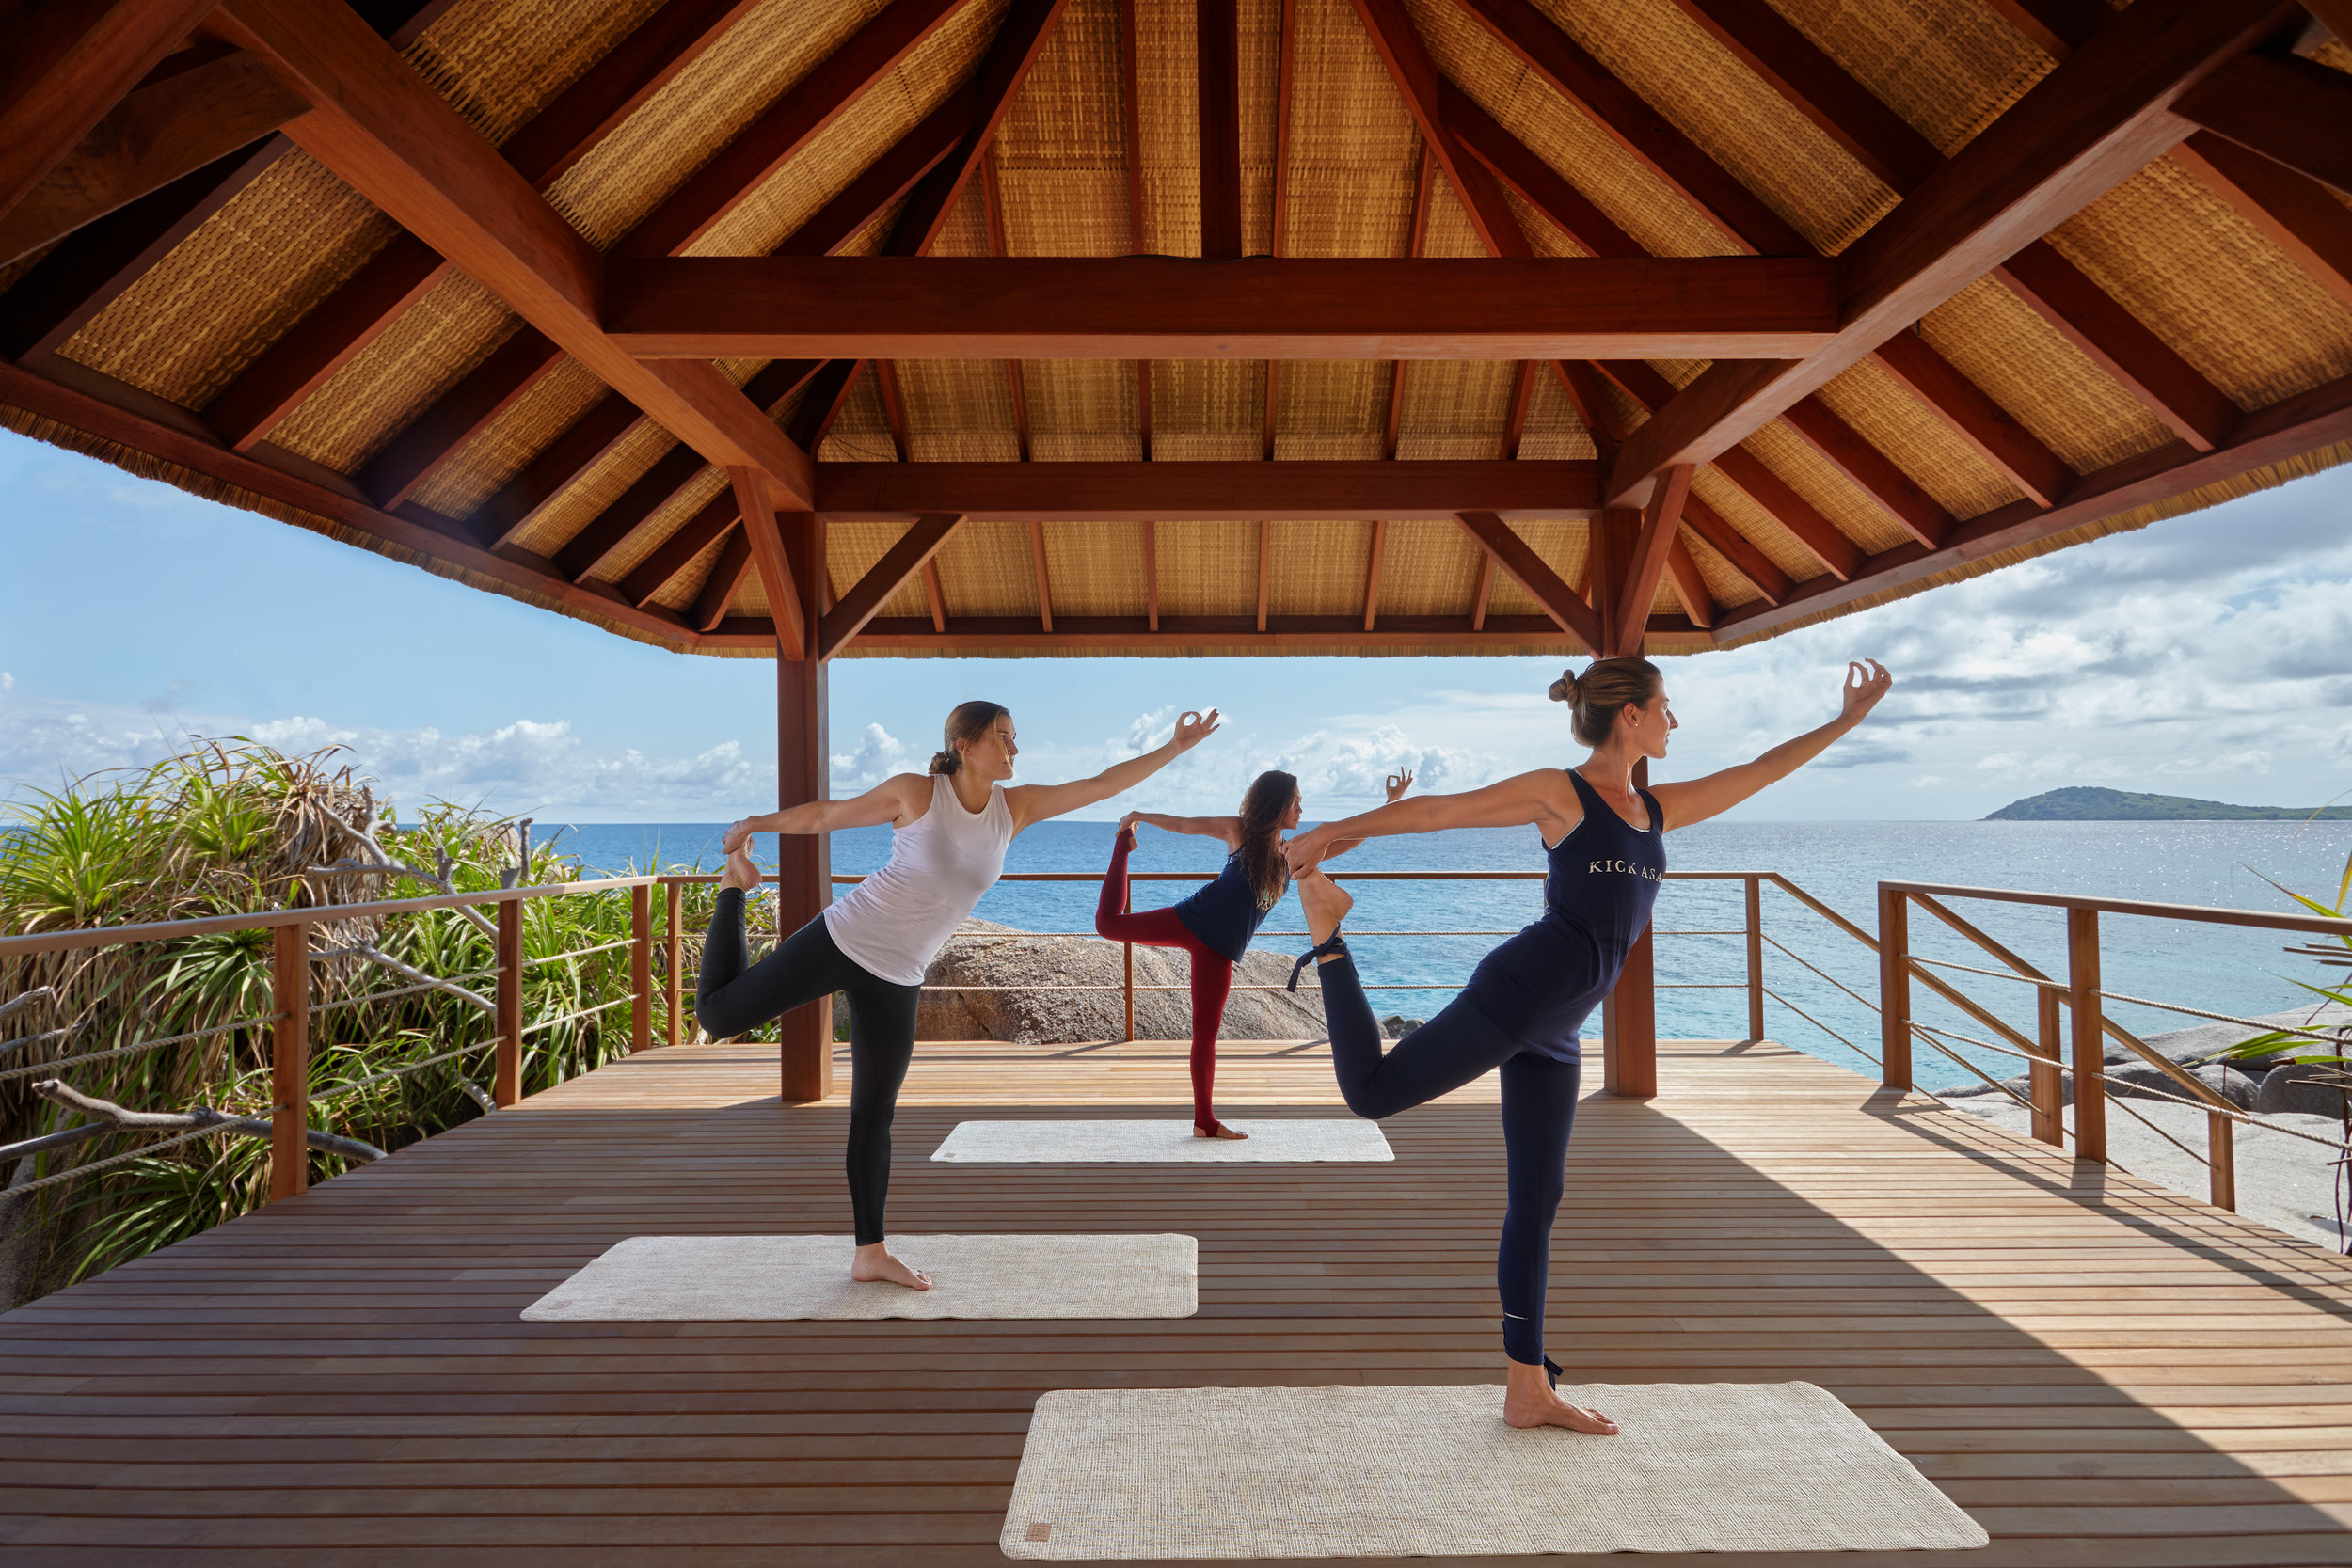 Yoga_Pavillion2_[6785-ORIGINAL].jpg